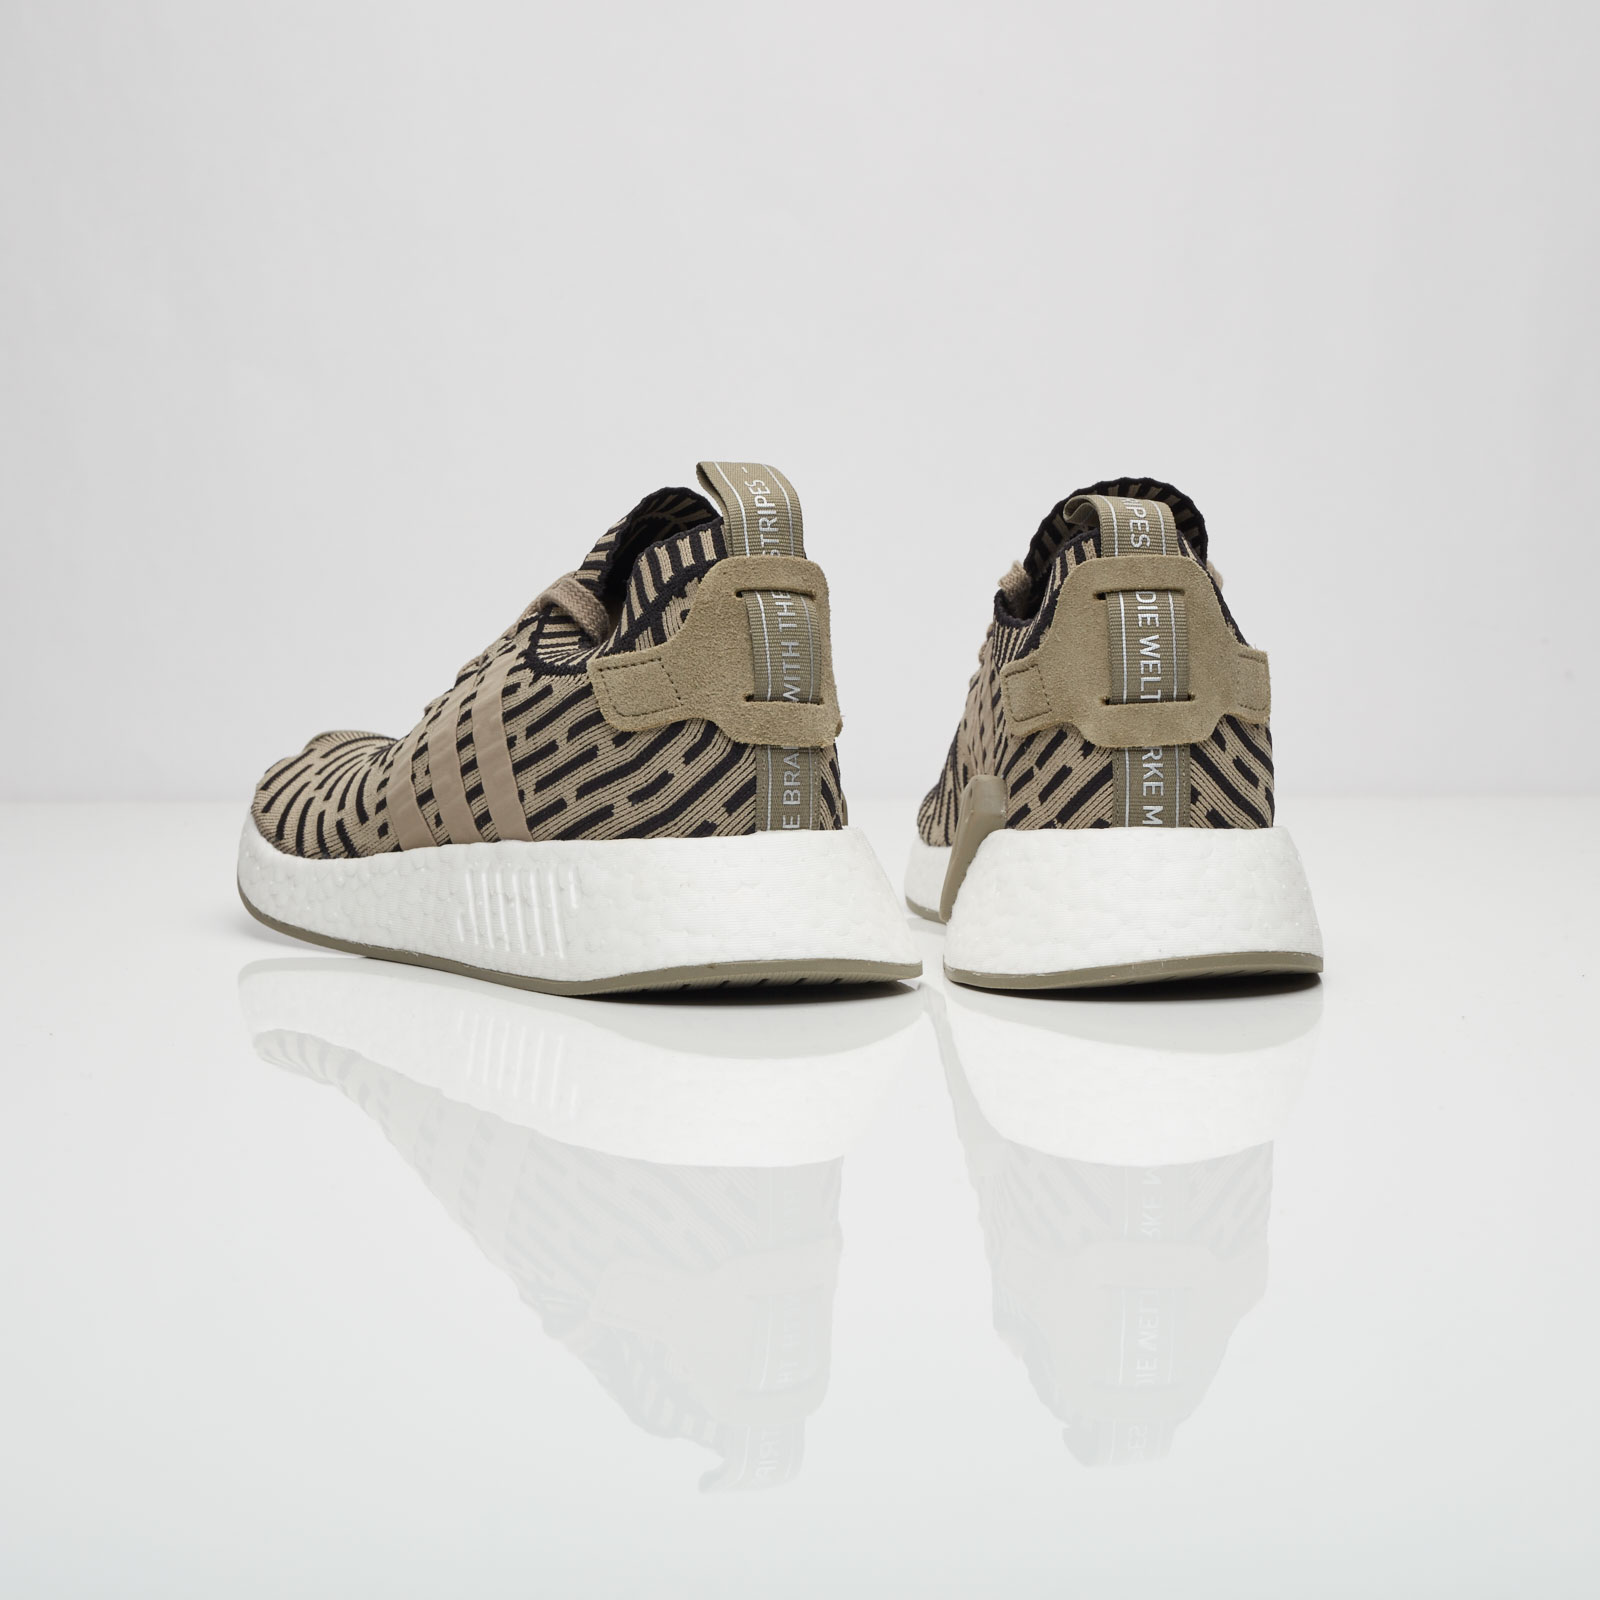 new product fff2a 50f09 adidas NMD_R2 PK - Ba7198 - Sneakersnstuff | sneakers ...